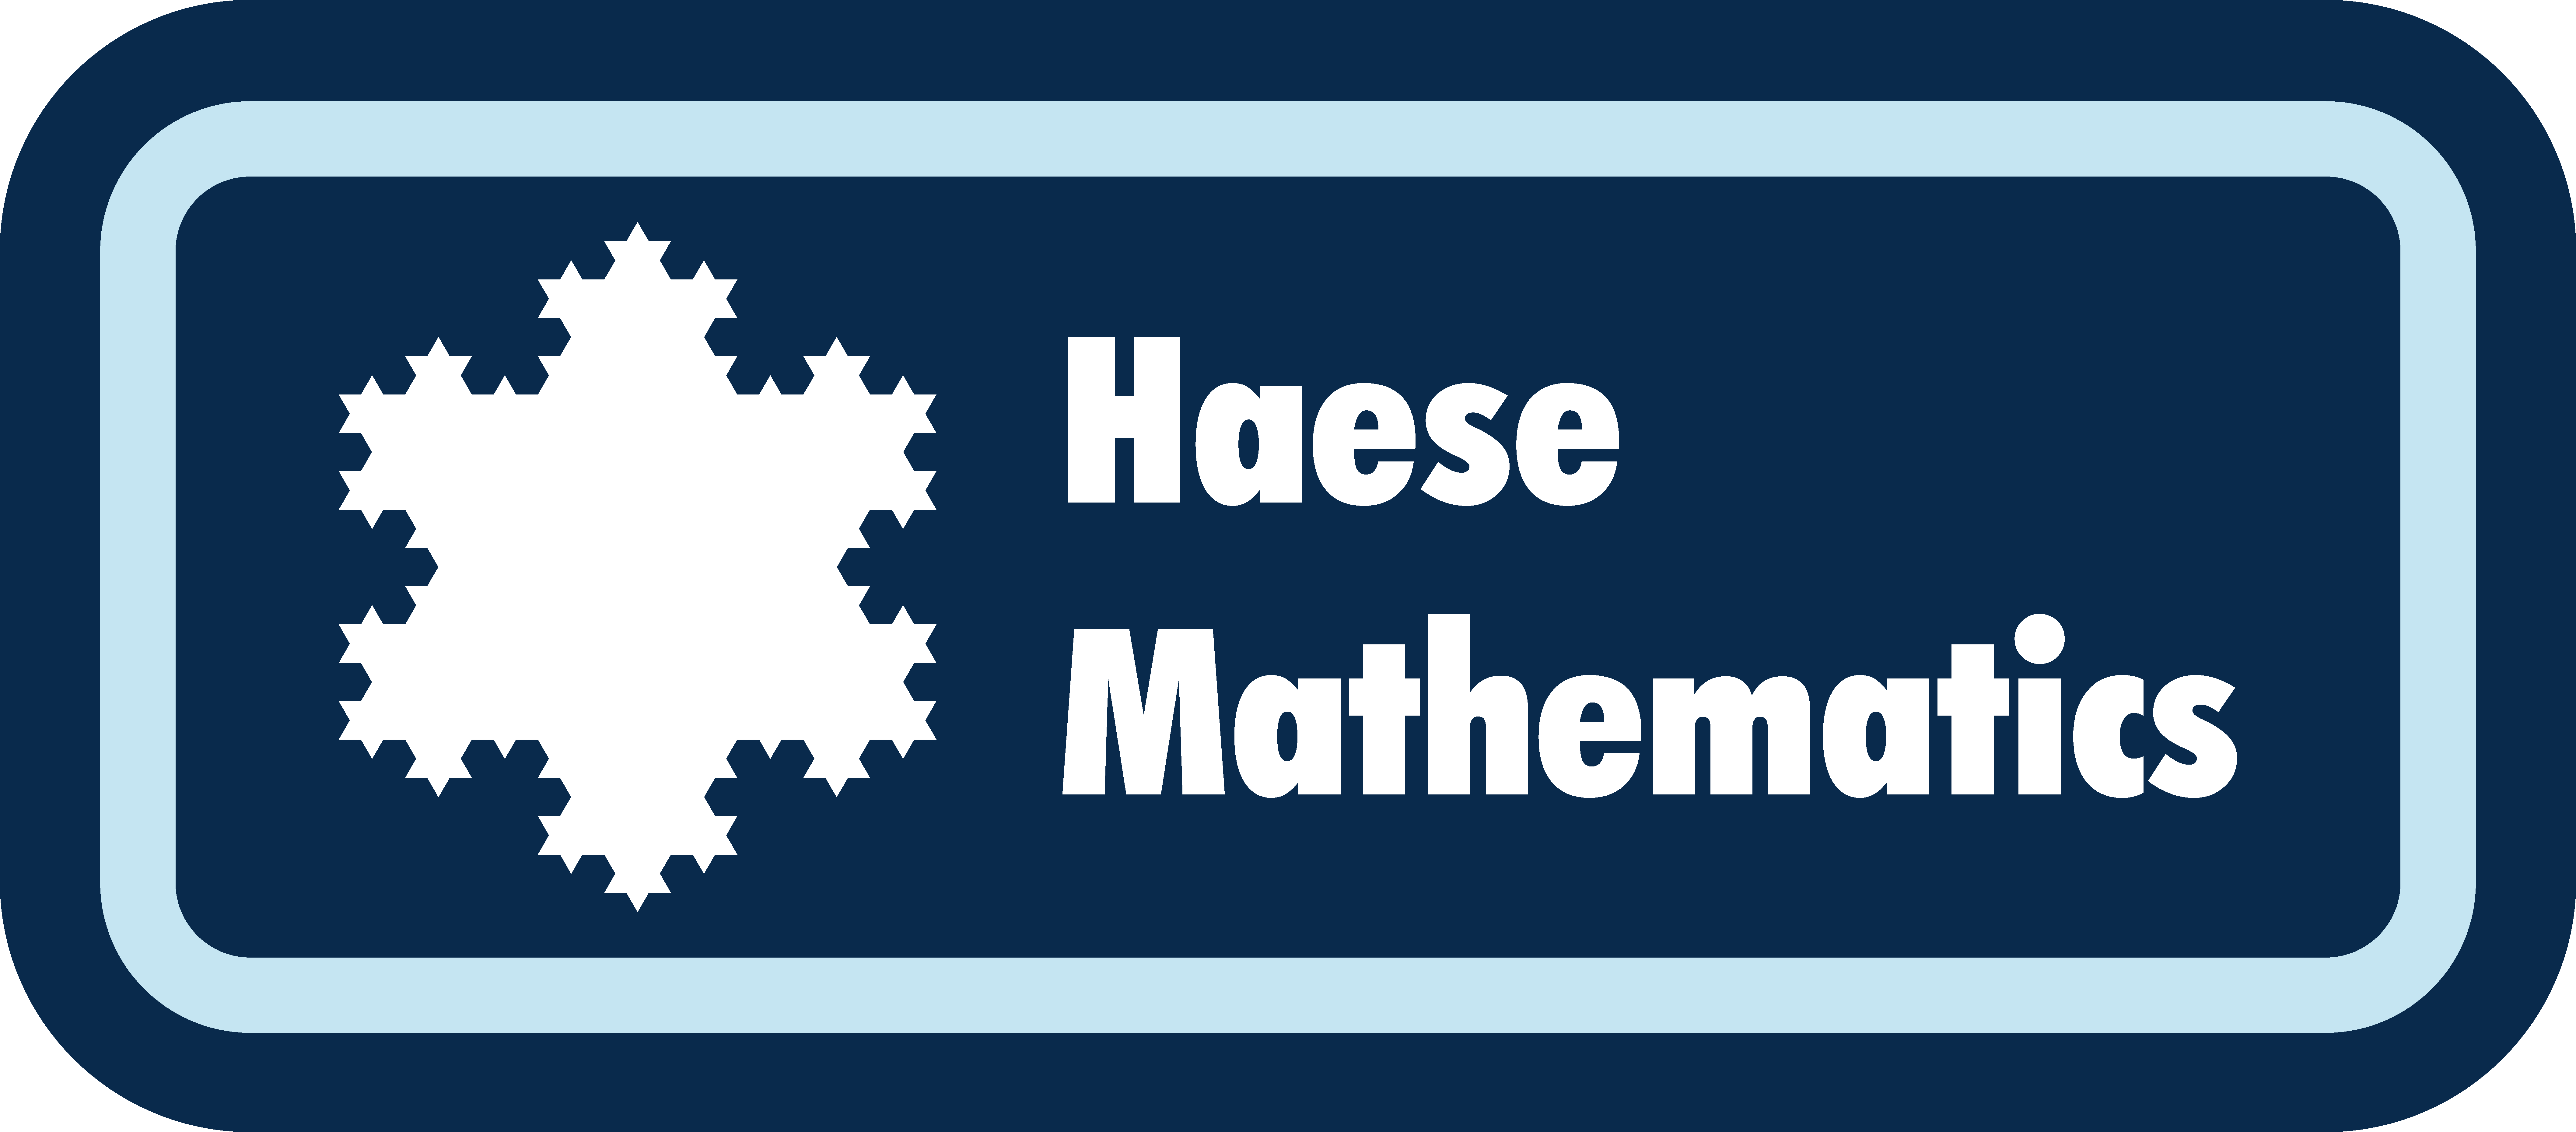 Haese Mathematics logo